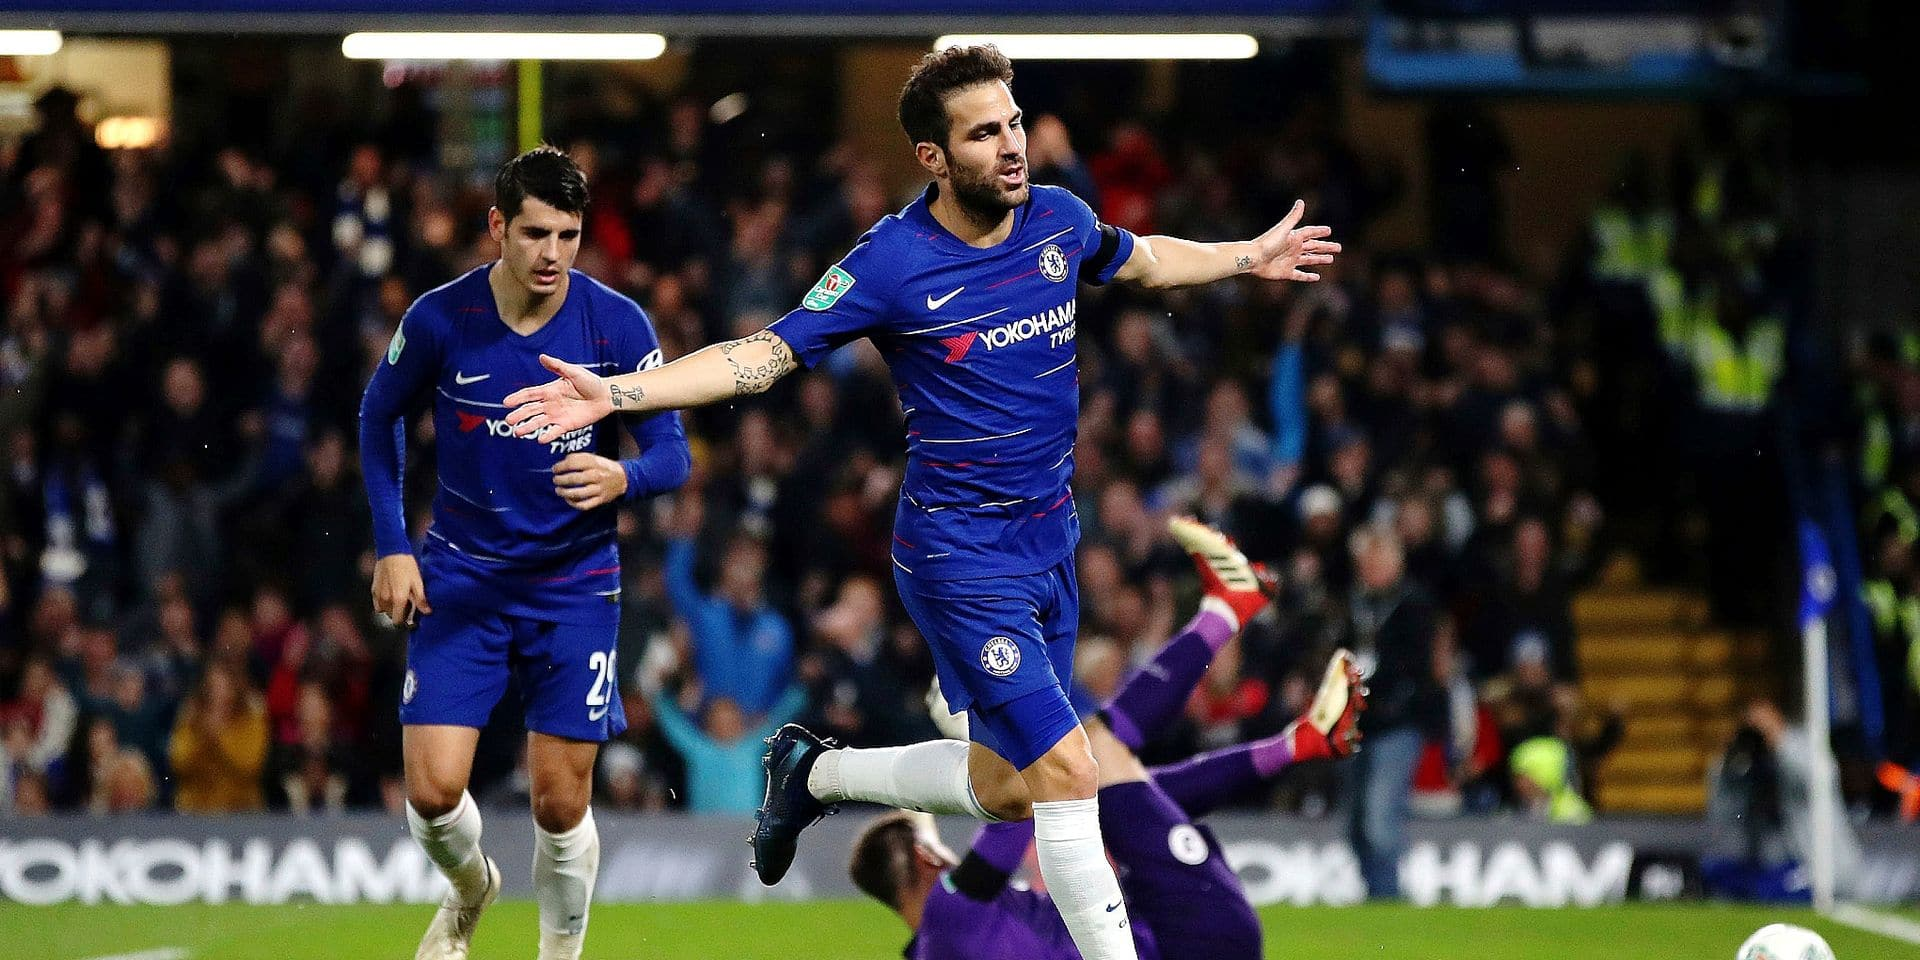 Chelsea's Cesc Fabregas celebrates scoring his side's third goal of the game during the English League Cup 4th round soccer match between Chelsea and Derby County in London, Wednesday, Oct. 31, 2018. (Nick Potts/PA via AP)